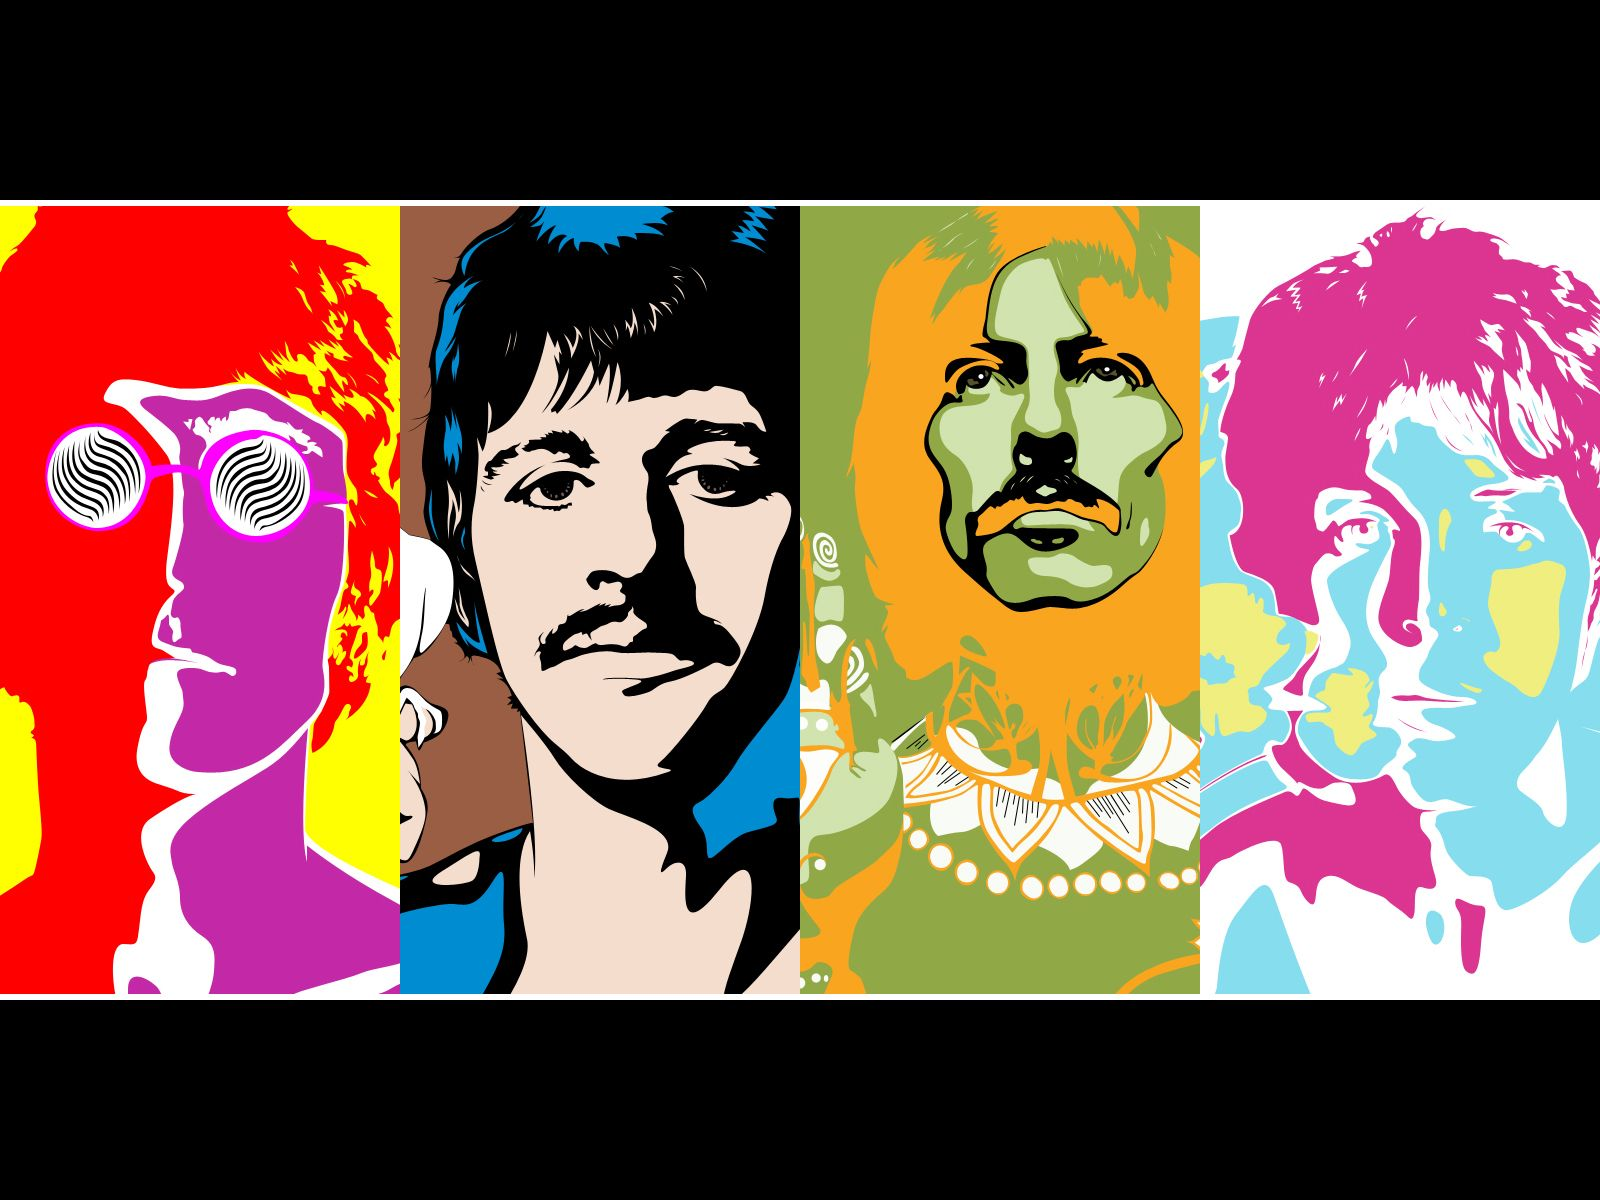 Water Color of Beatles Image Wallpaper